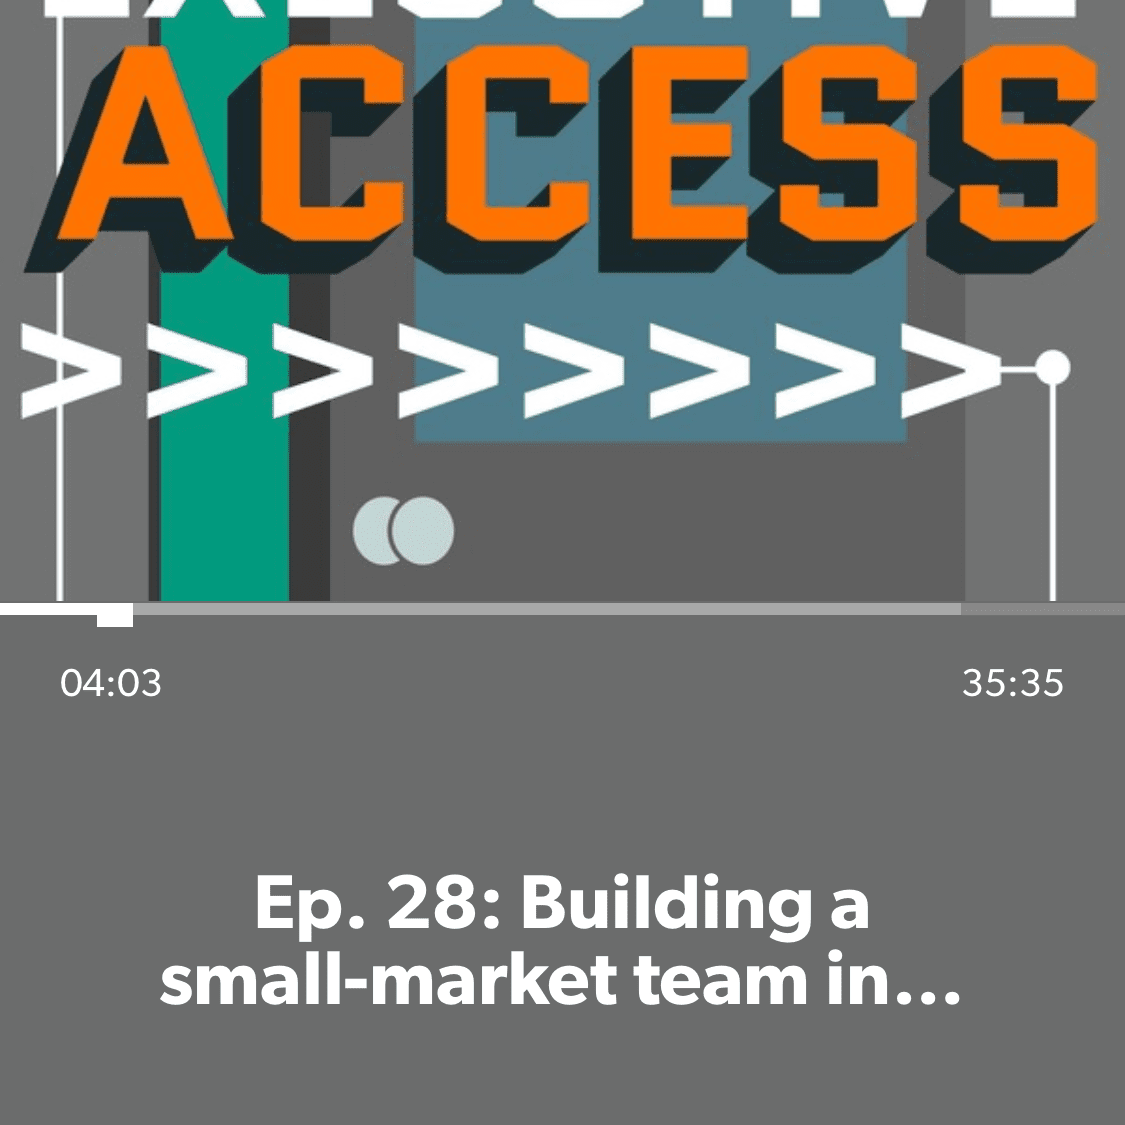 Executive Access podcast